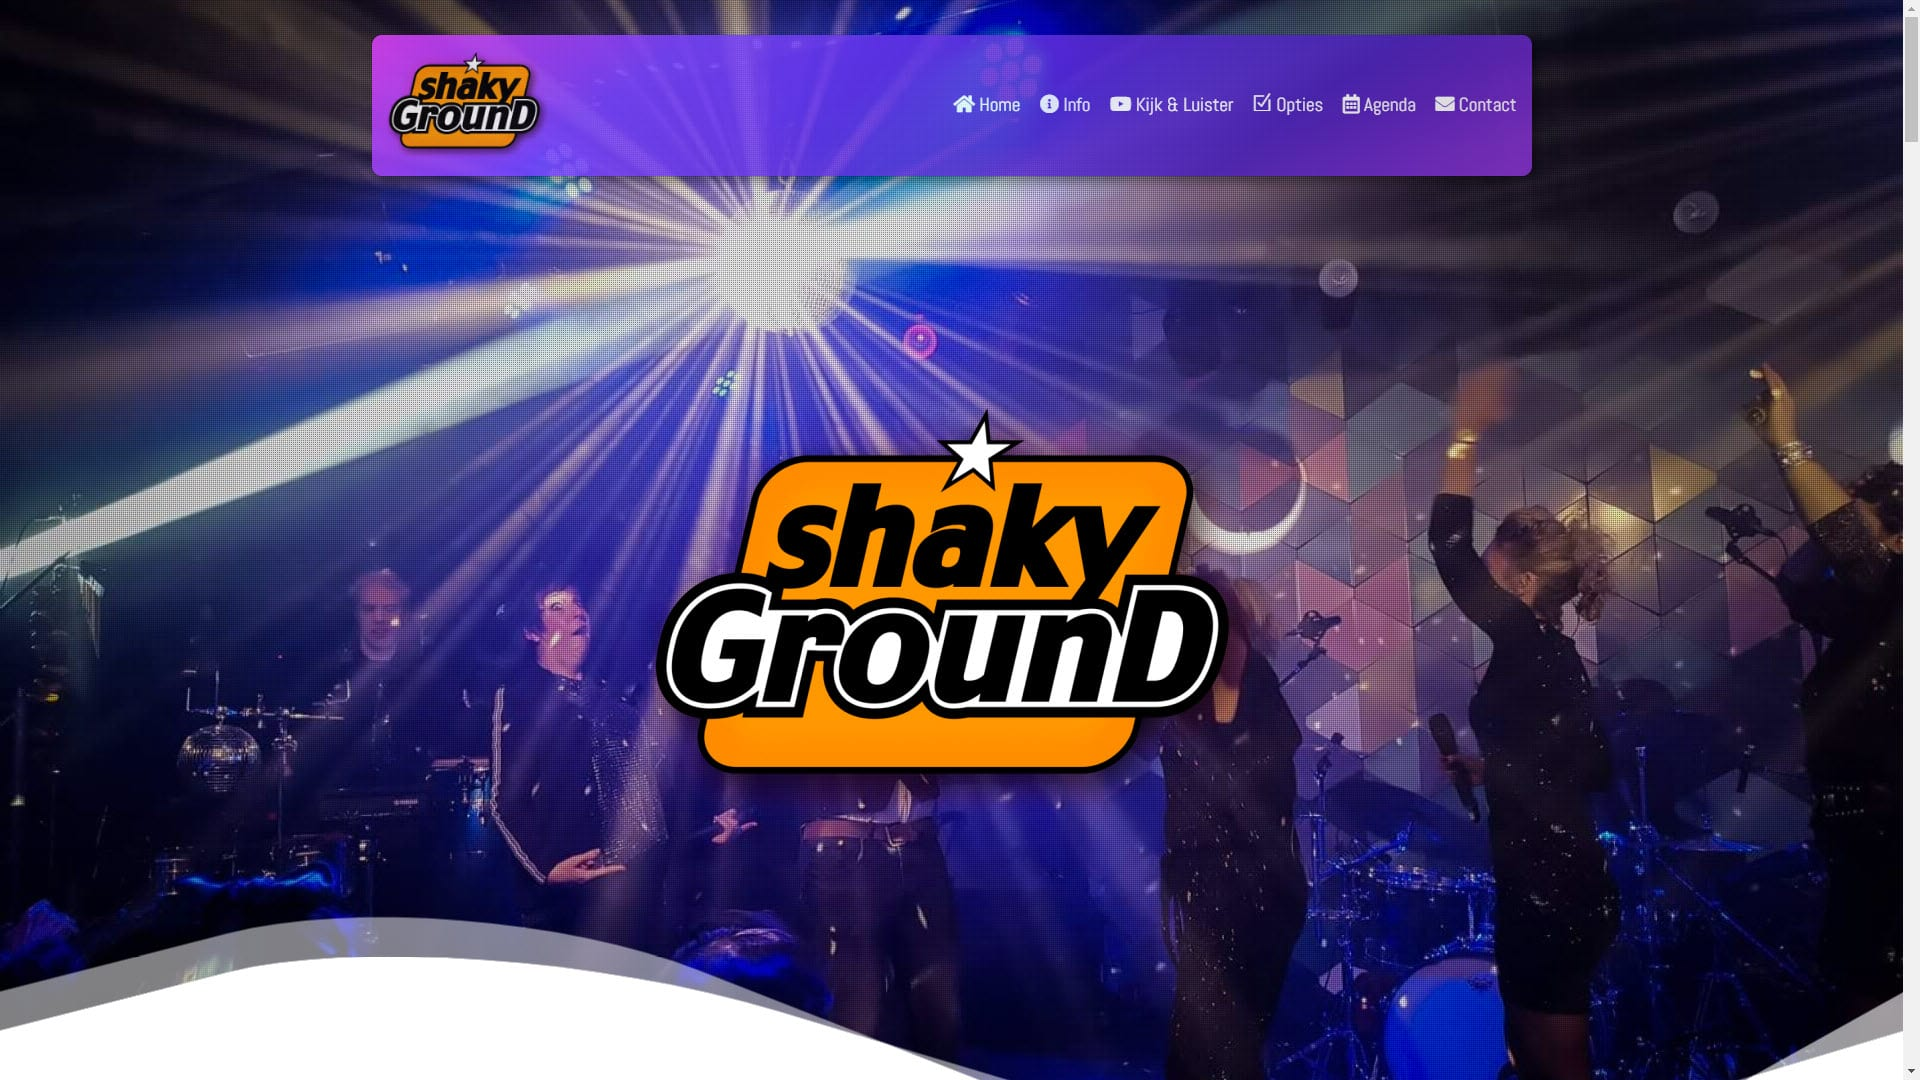 Shaky Ground.nl